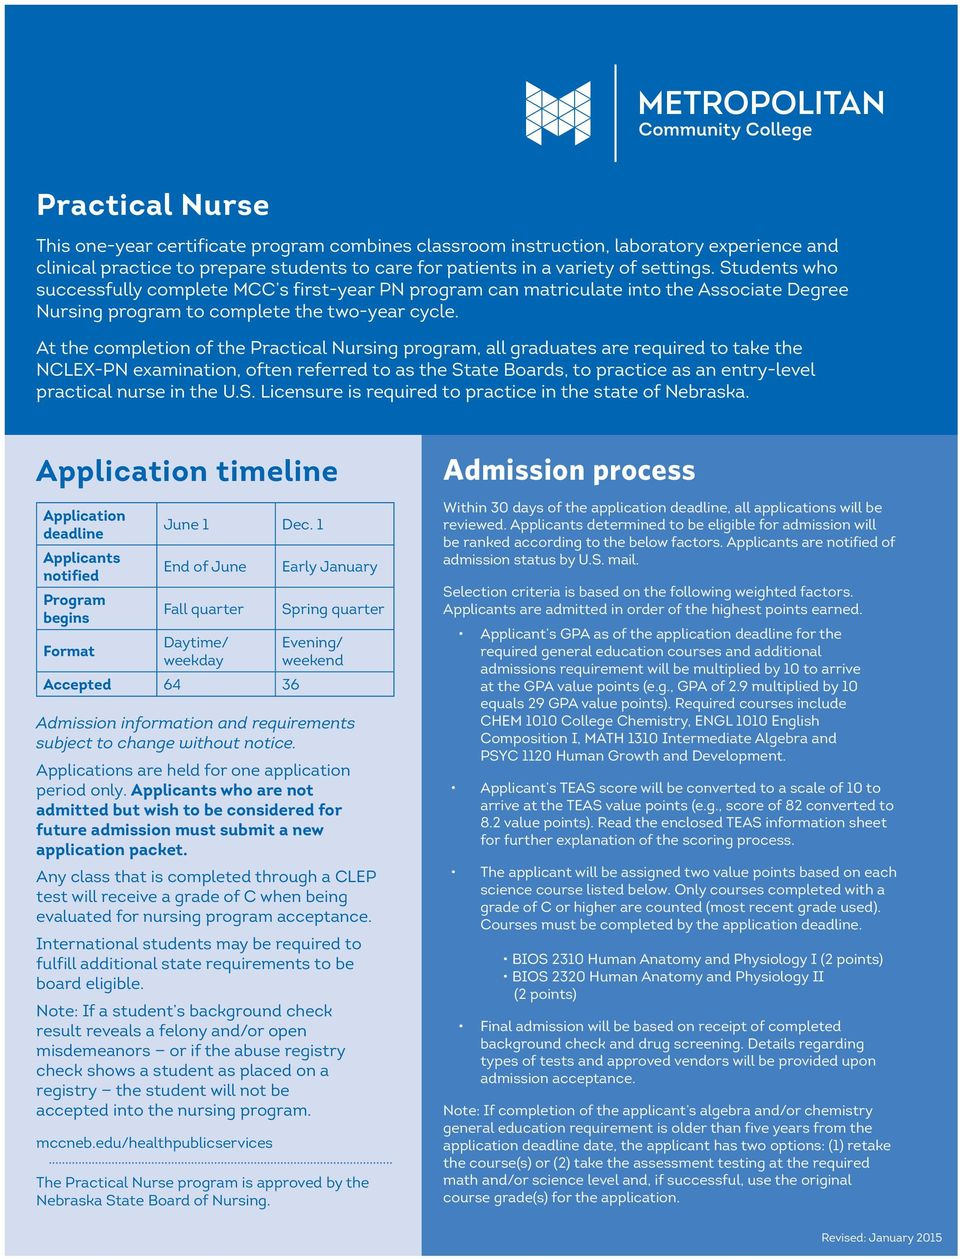 At the completion of the Practical Nursing program, all graduates are required to take the NCLEX-PN examination, often referred to as the State Boards, to practice as an entry-level practical nurse